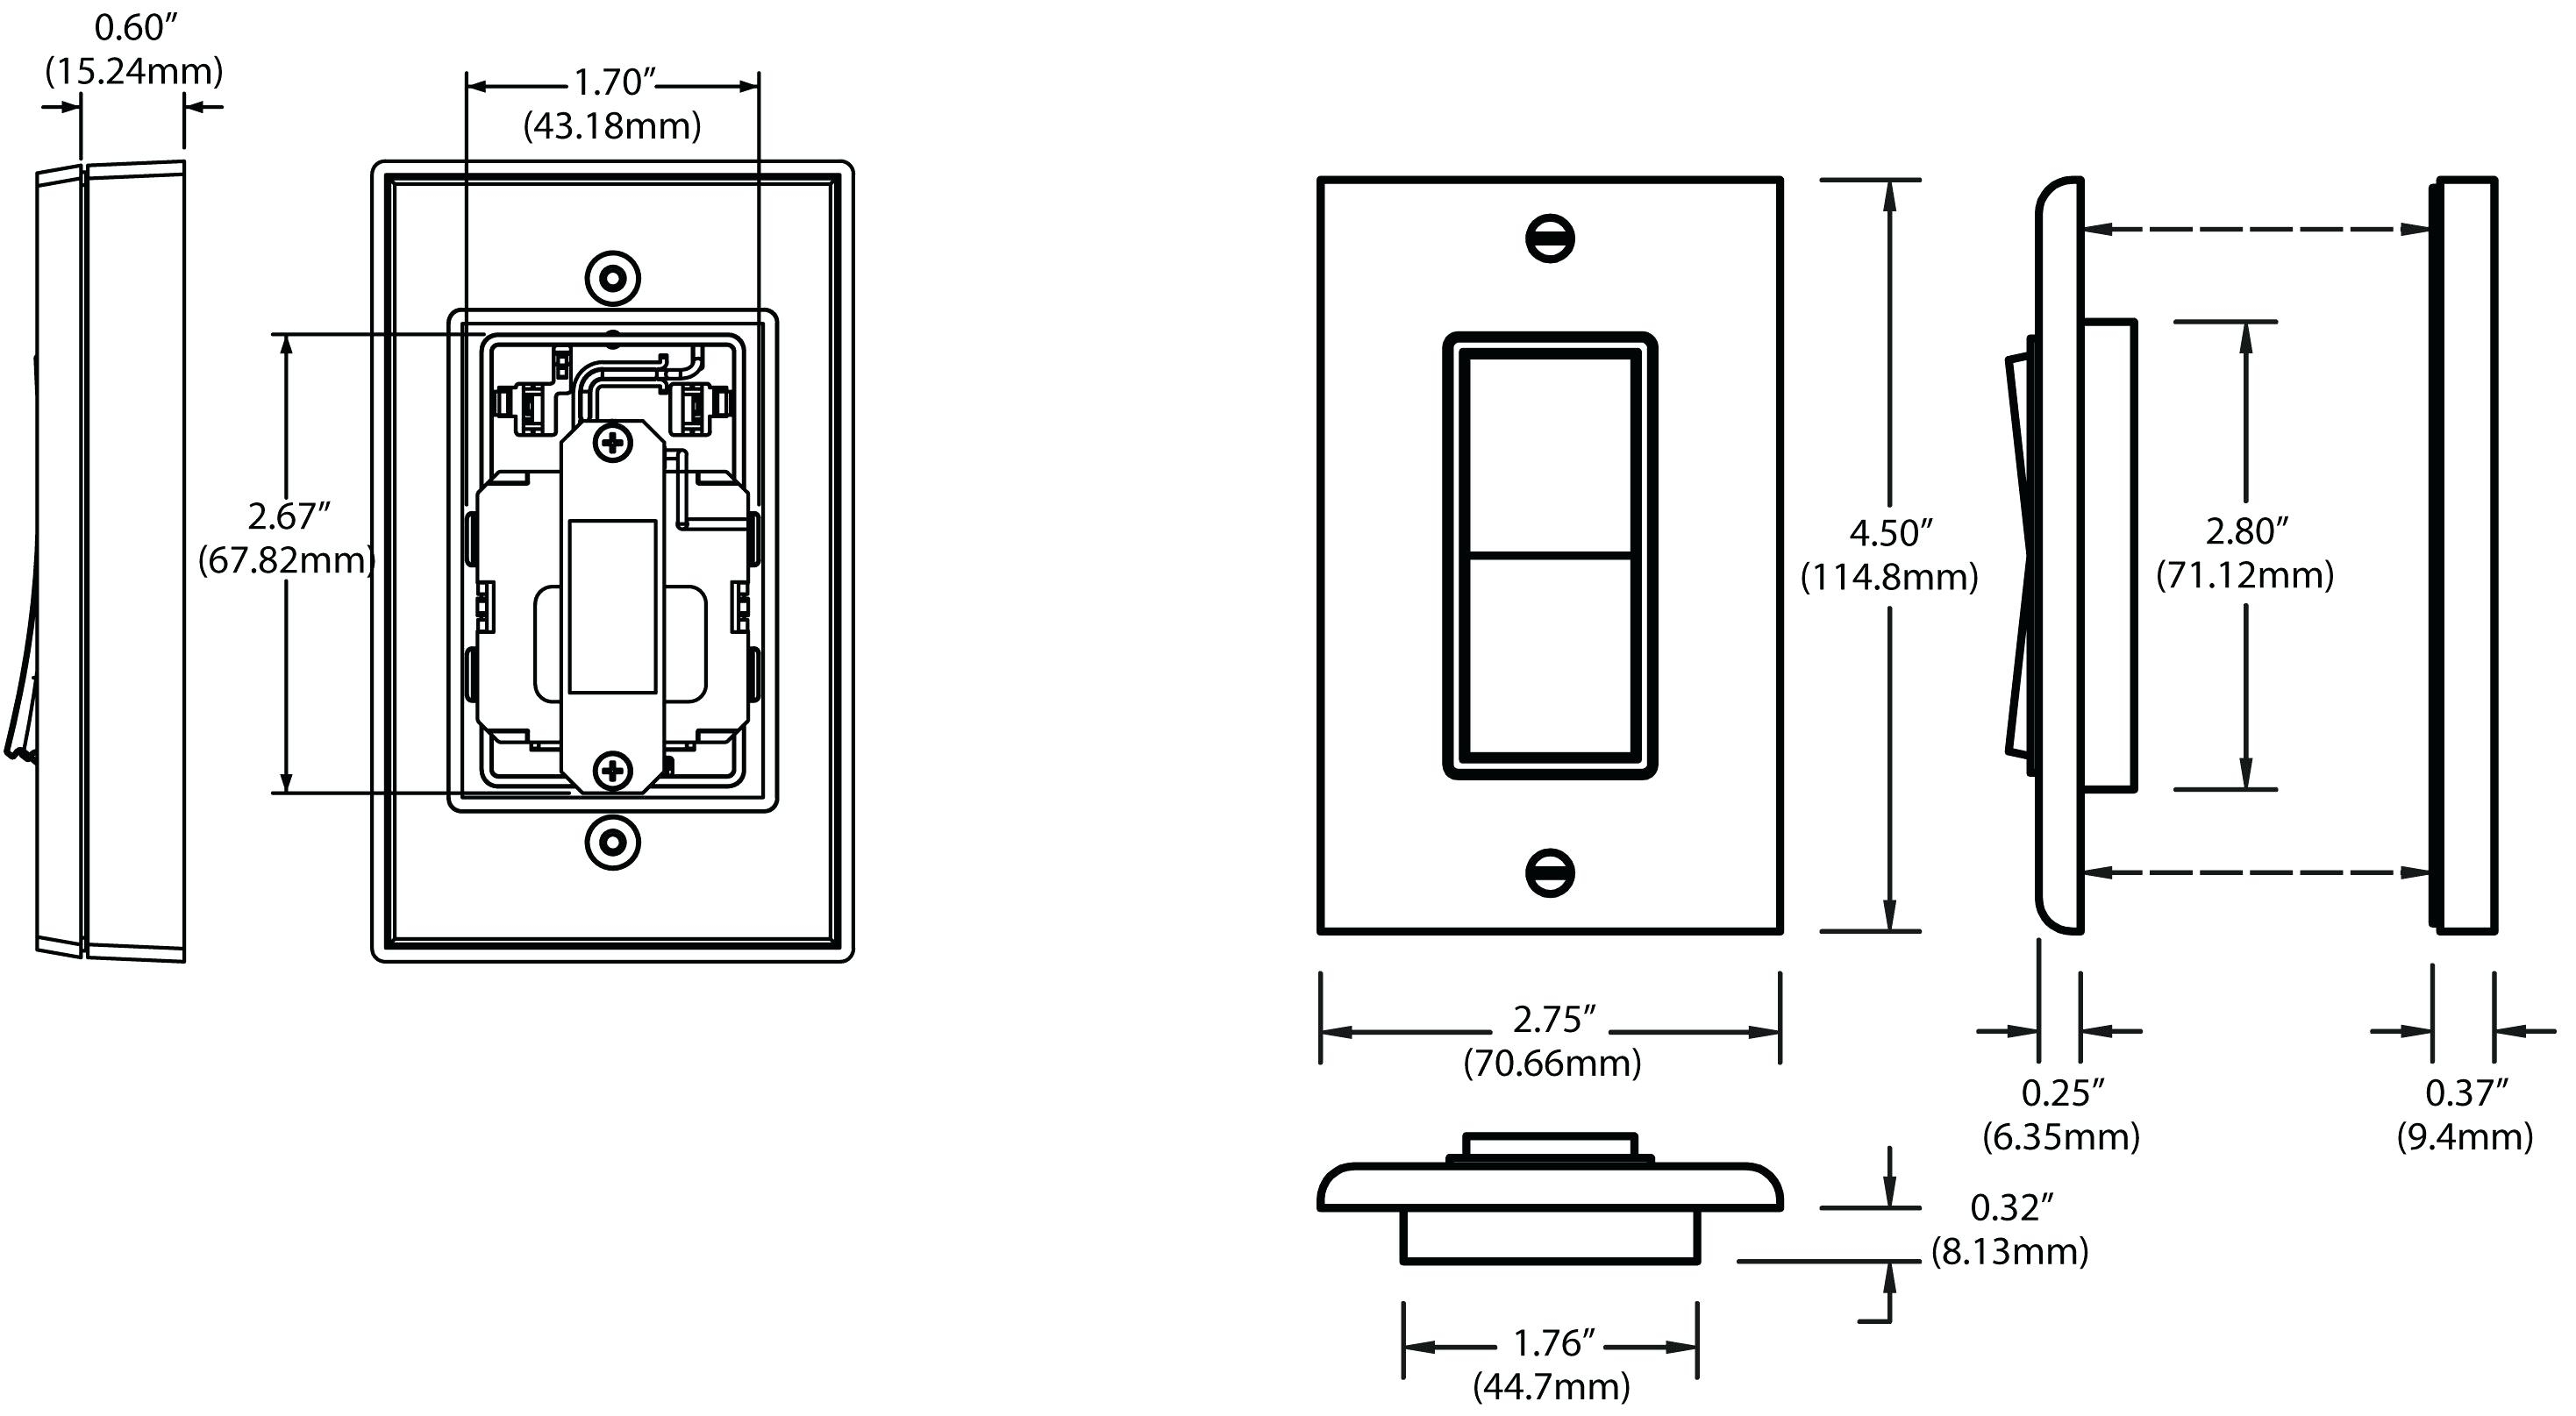 Leviton Dimmer Wiring Diagram 3 Way Copy Diagram Leviton 3 Way - Leviton Dimmers Wiring Diagram